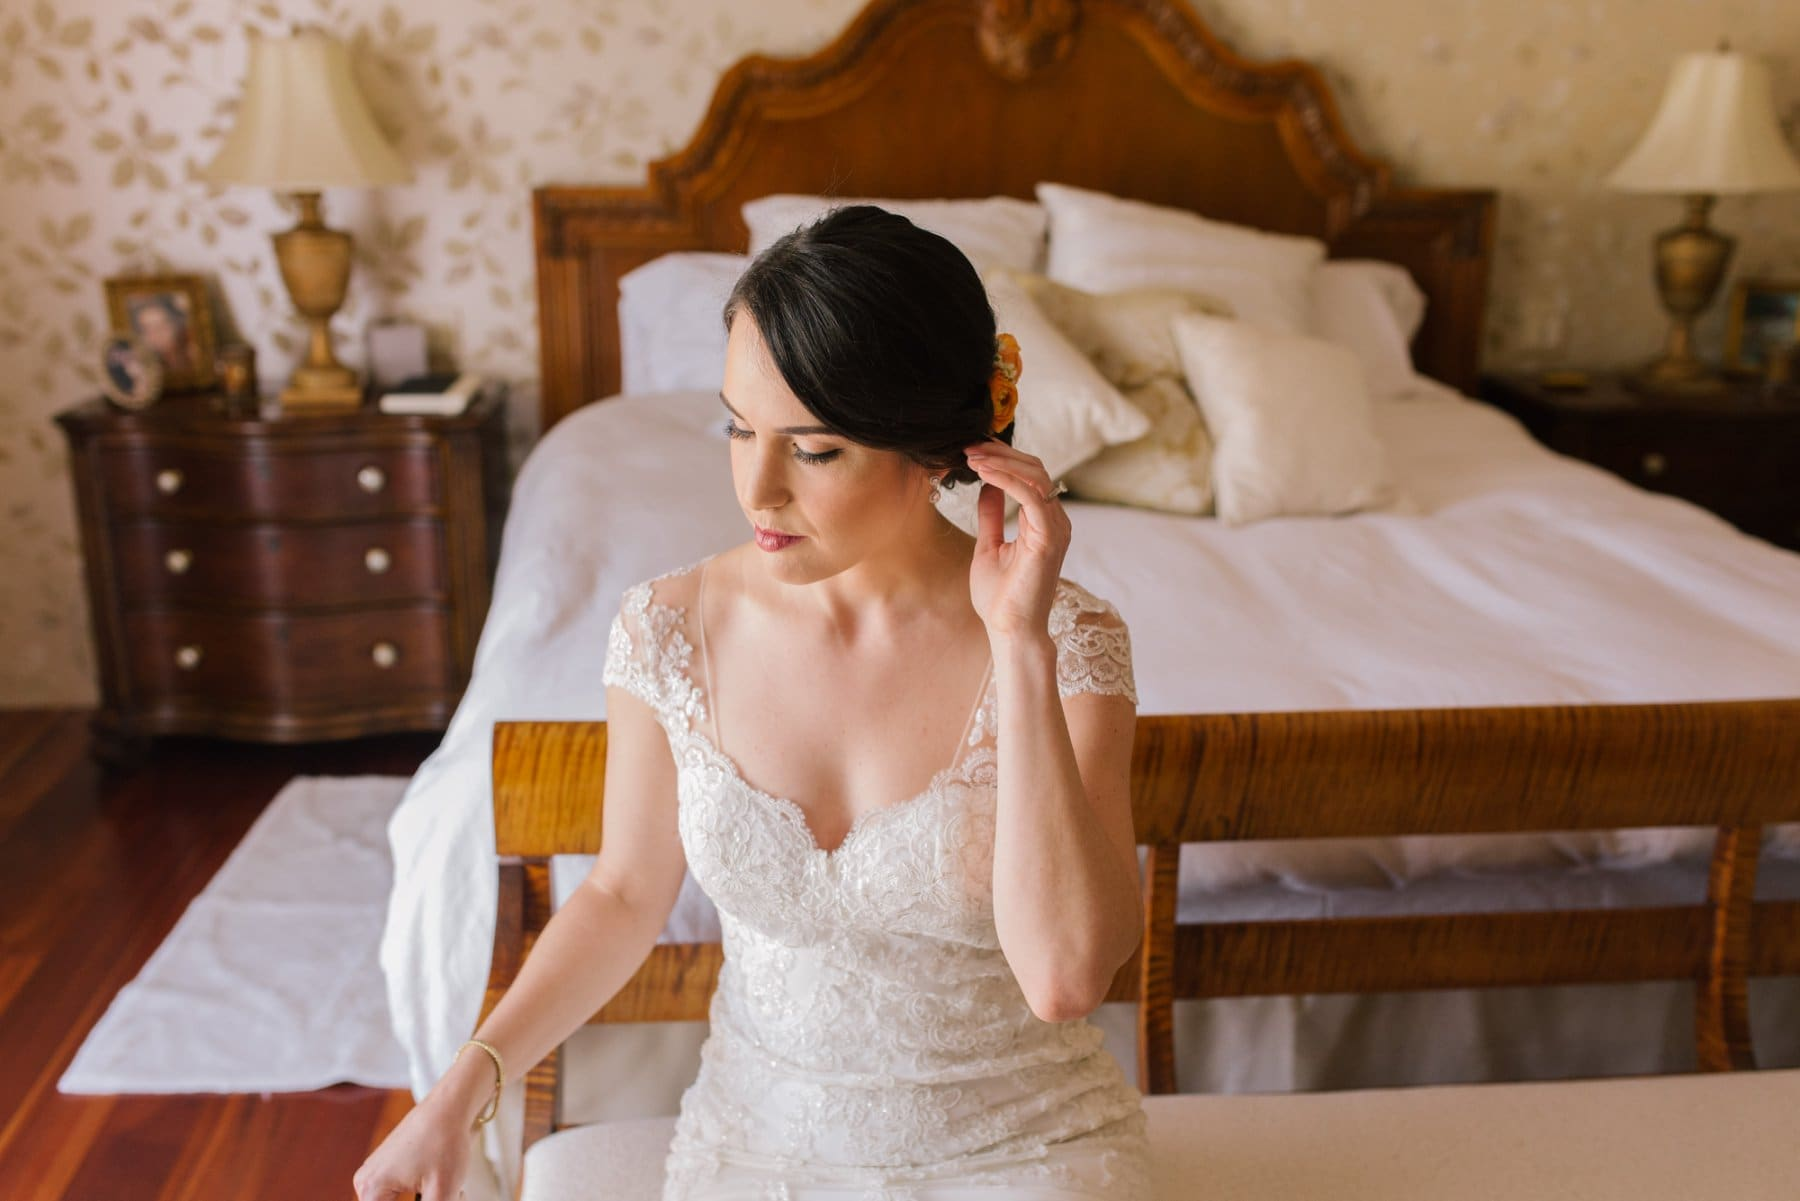 bride getting ready in home Arizona wedding photos